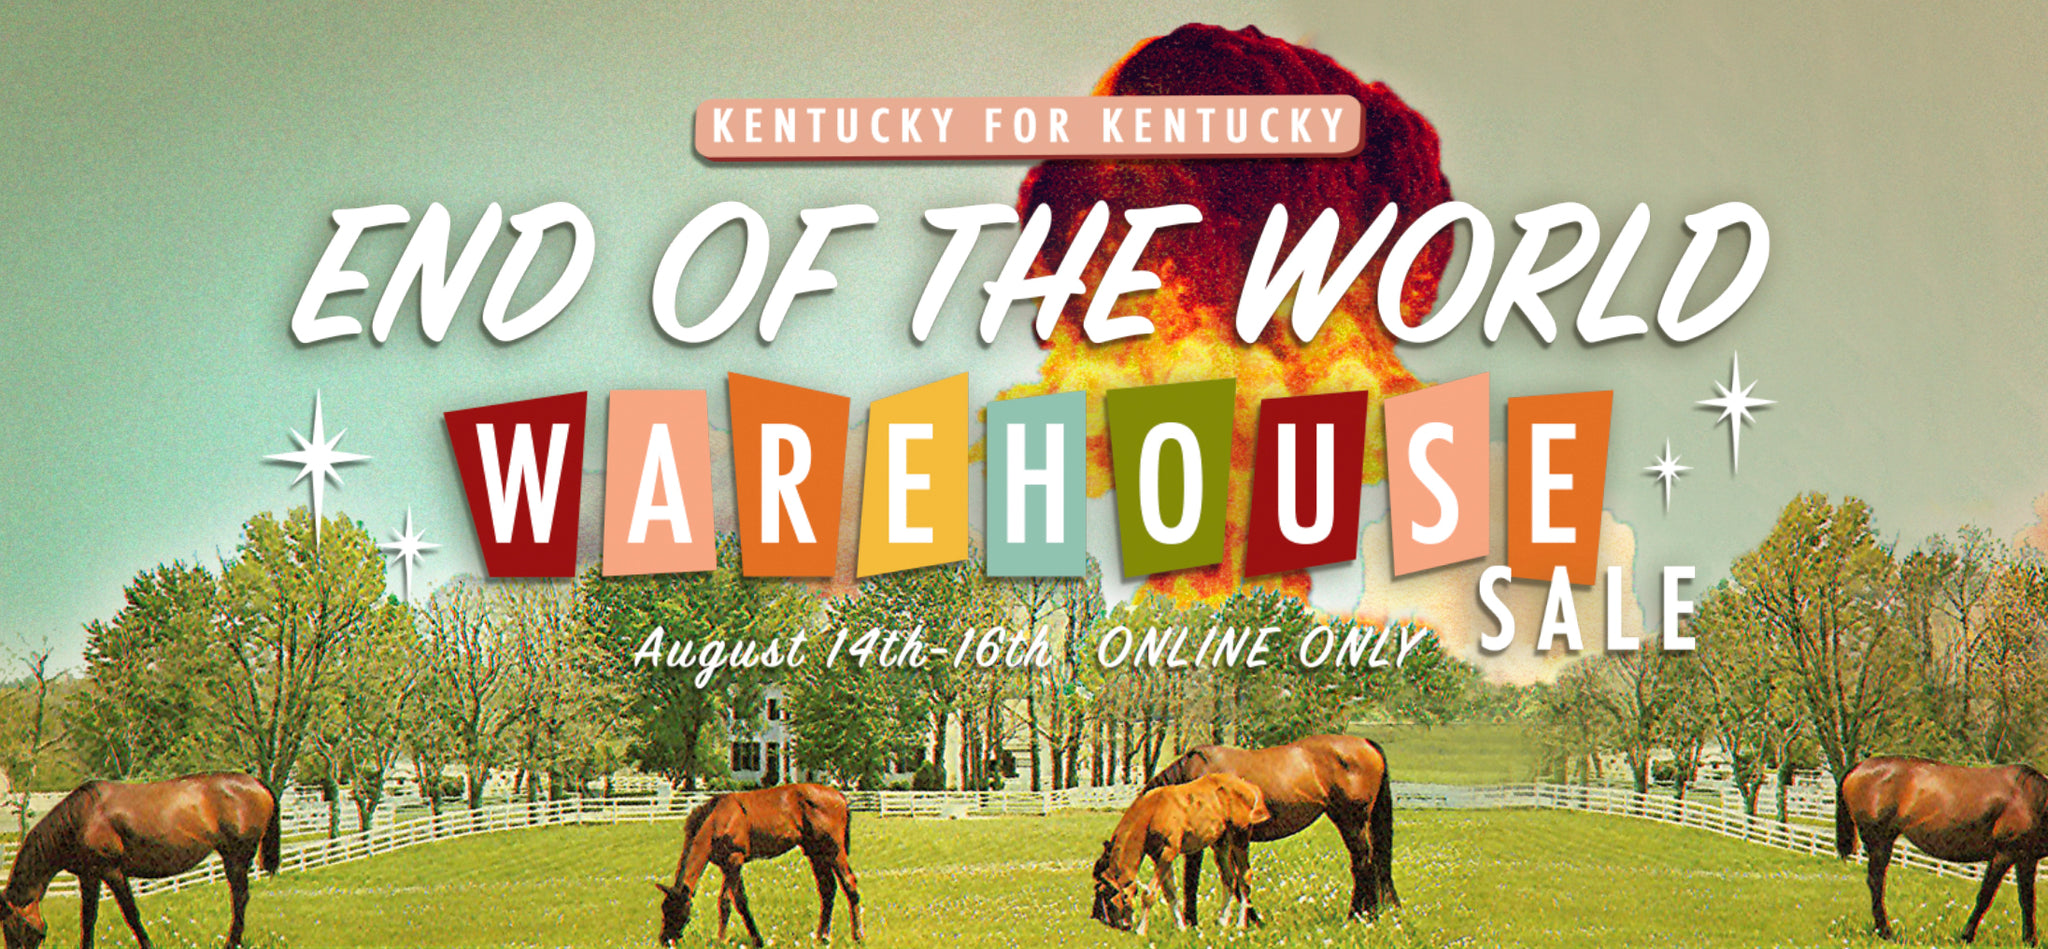 END OF THE WORLD ONLINE WAREHOUSE SALE Aug 14-16